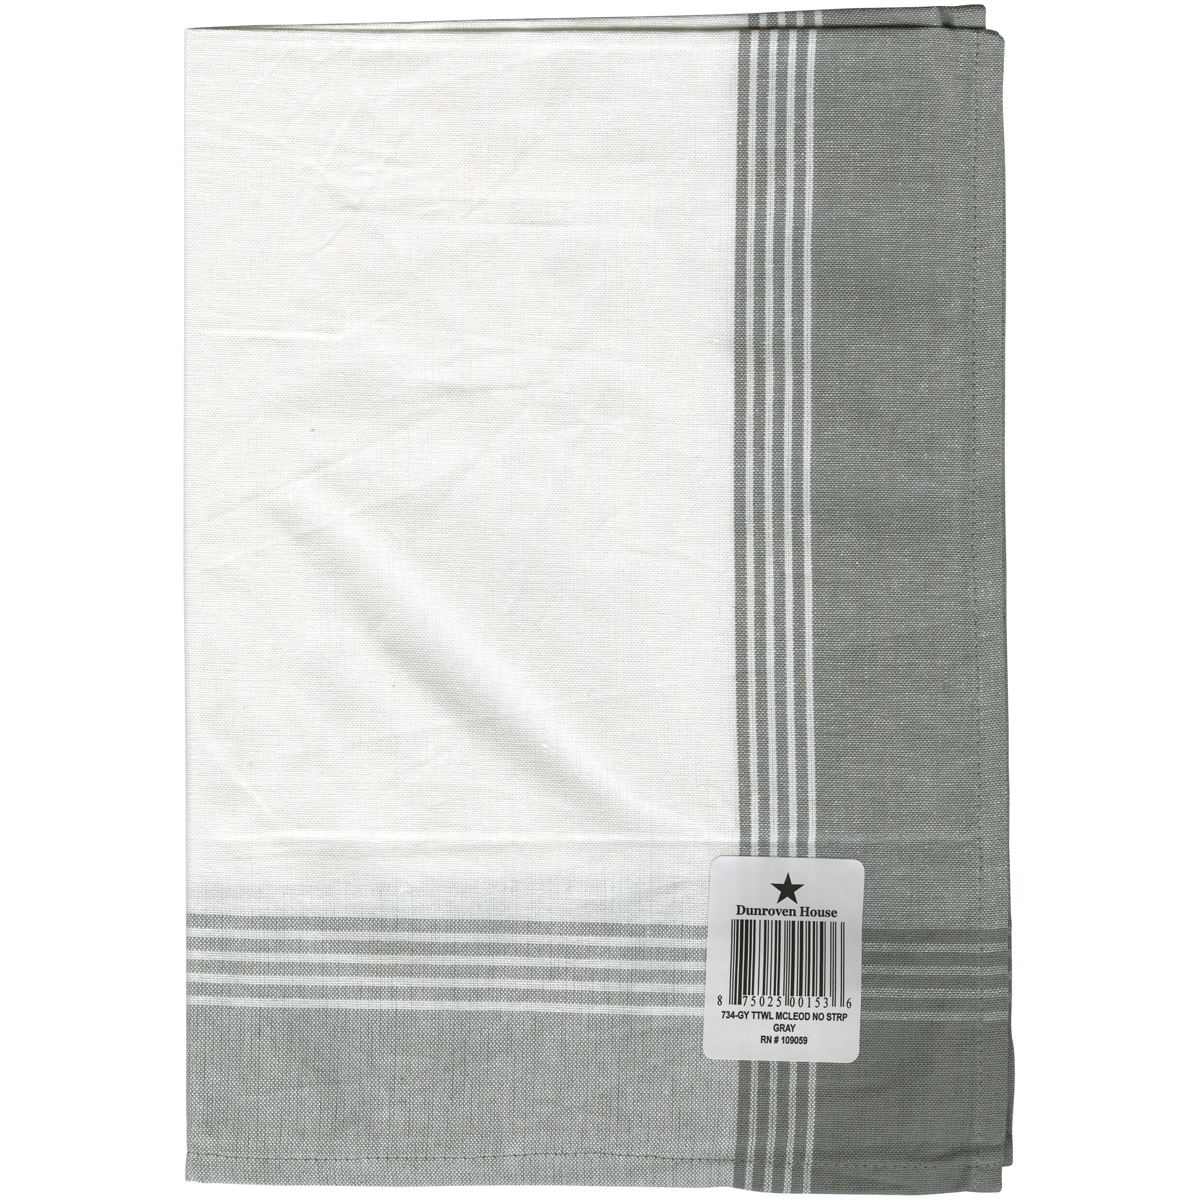 Tea Towel McLeod Blue and White by Dunroven House